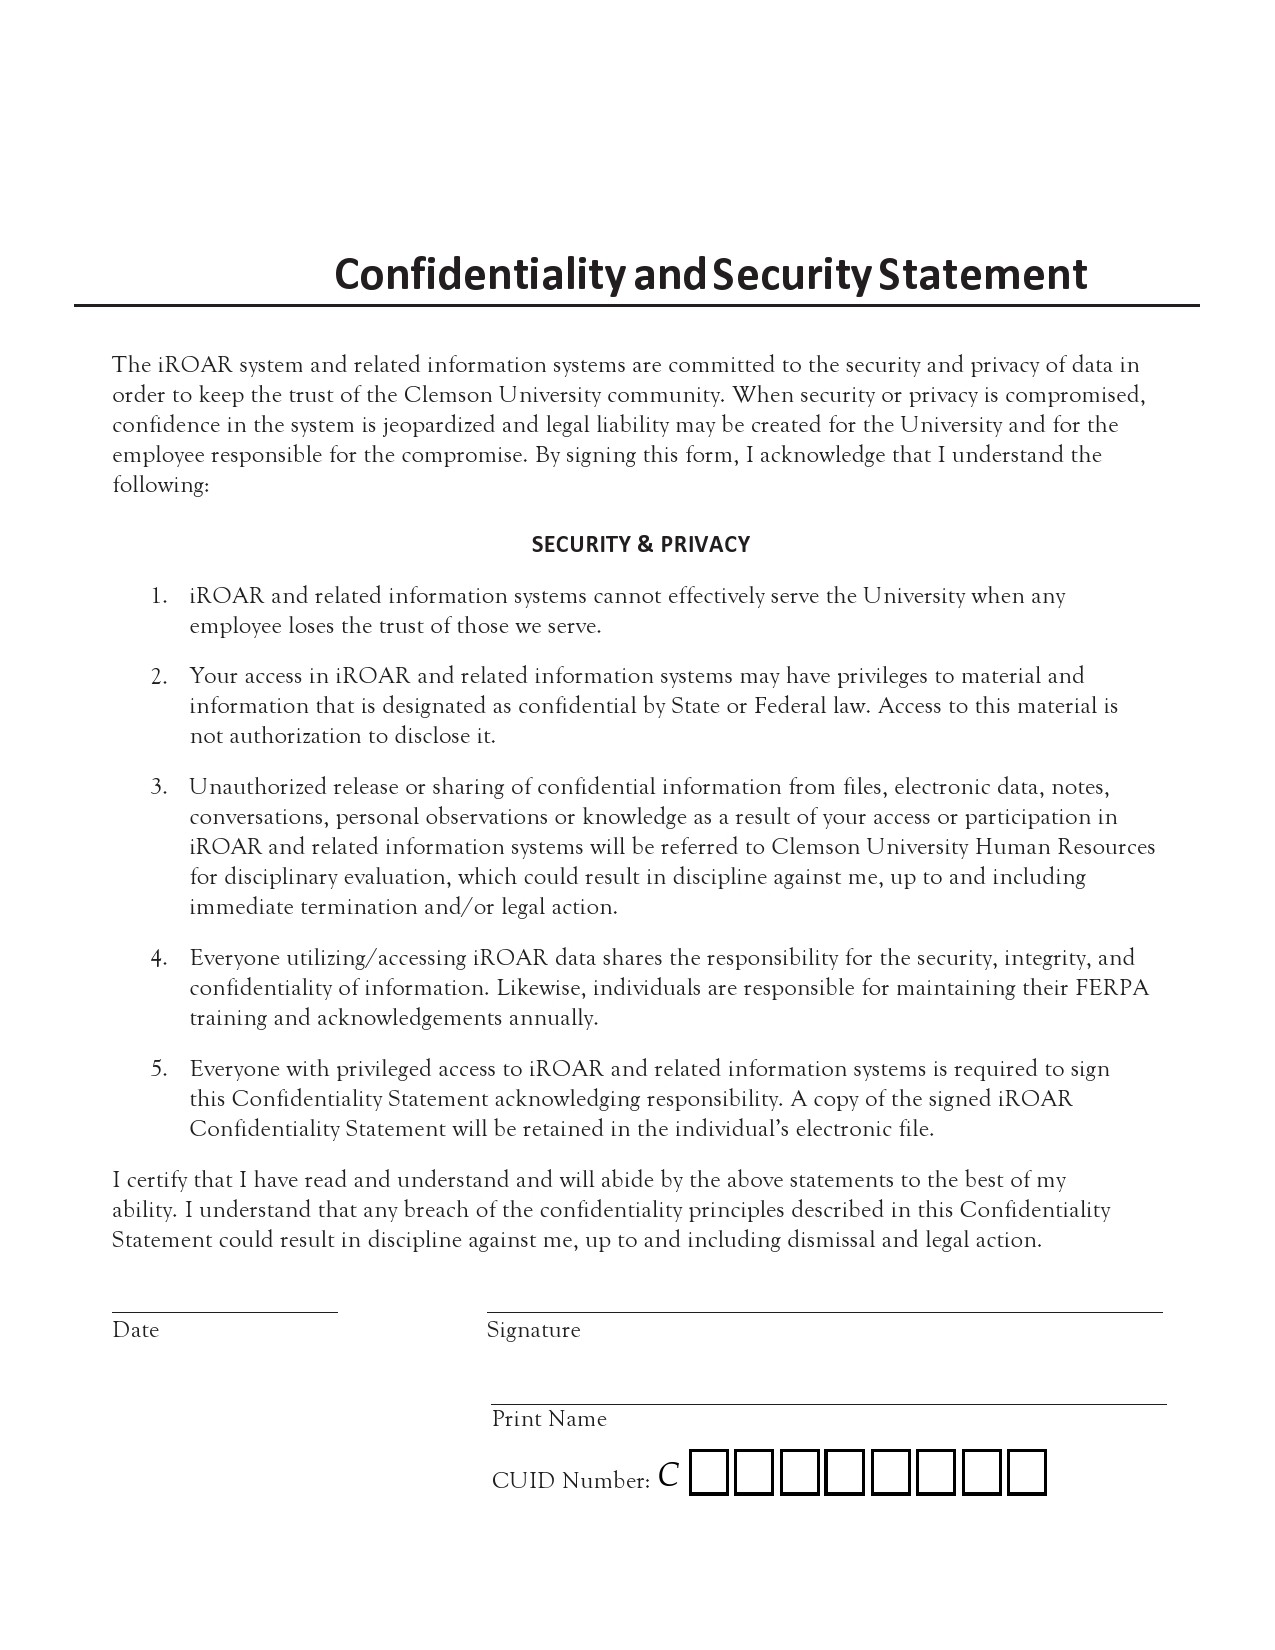 confidentiality statement template 15